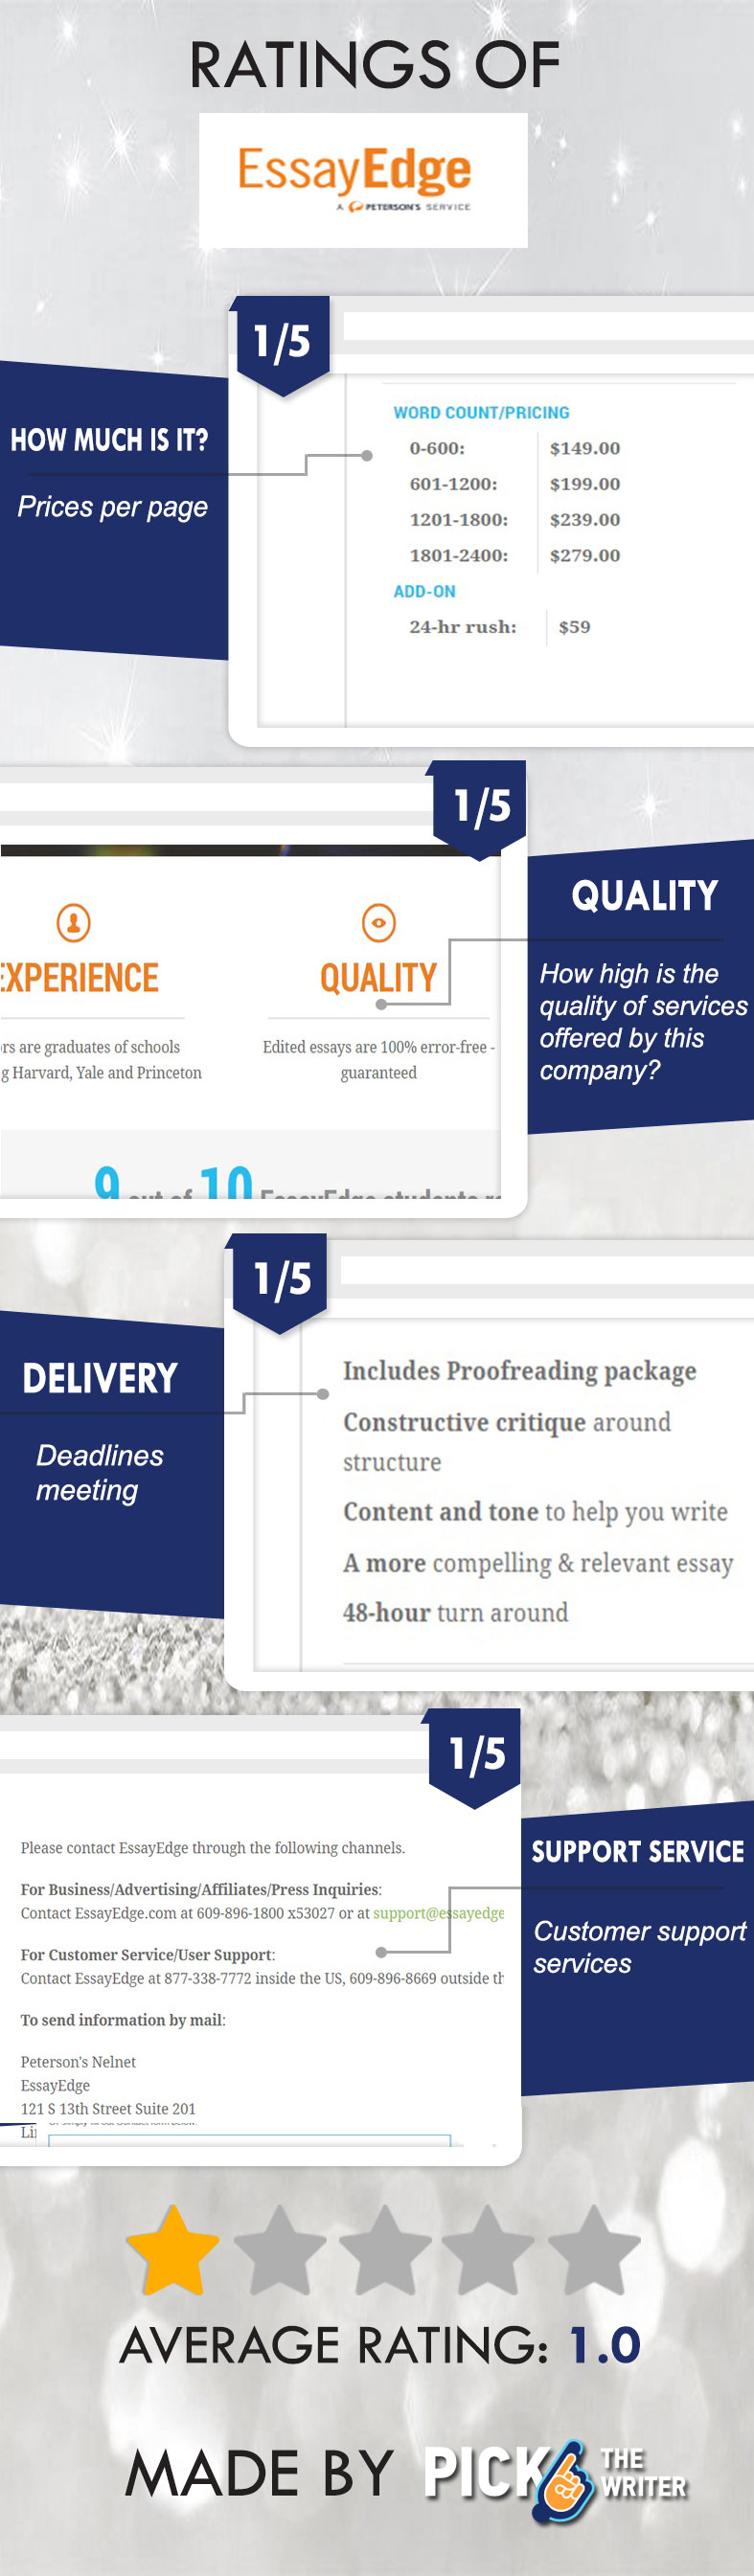 003 Essayedge Review Made By Pick The Writer Website Essay Example Unusual Edge Personal Statement Pricing Full